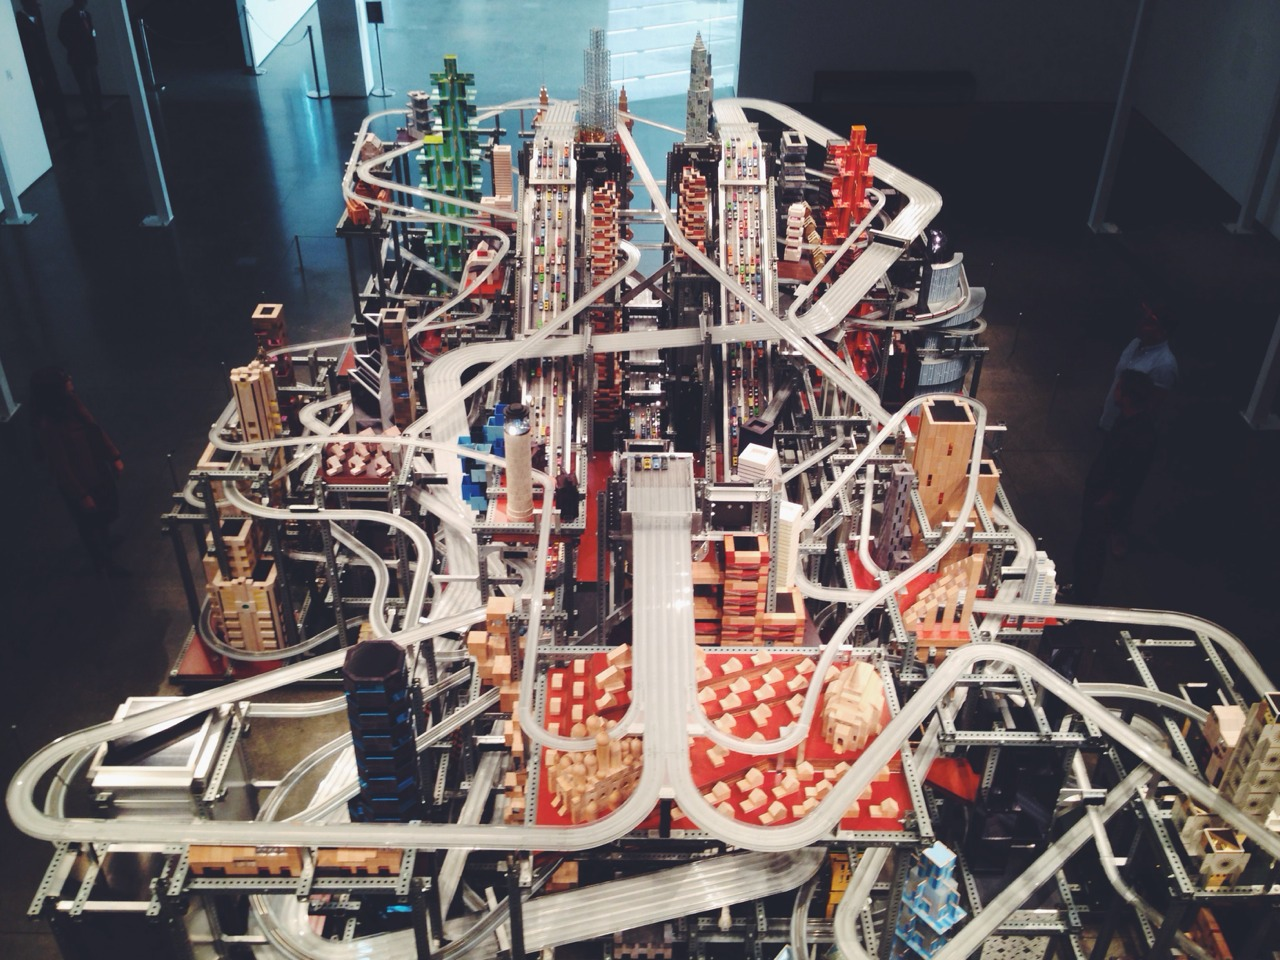 (Parked) Chris Burden - Metropolis II @ LACMA